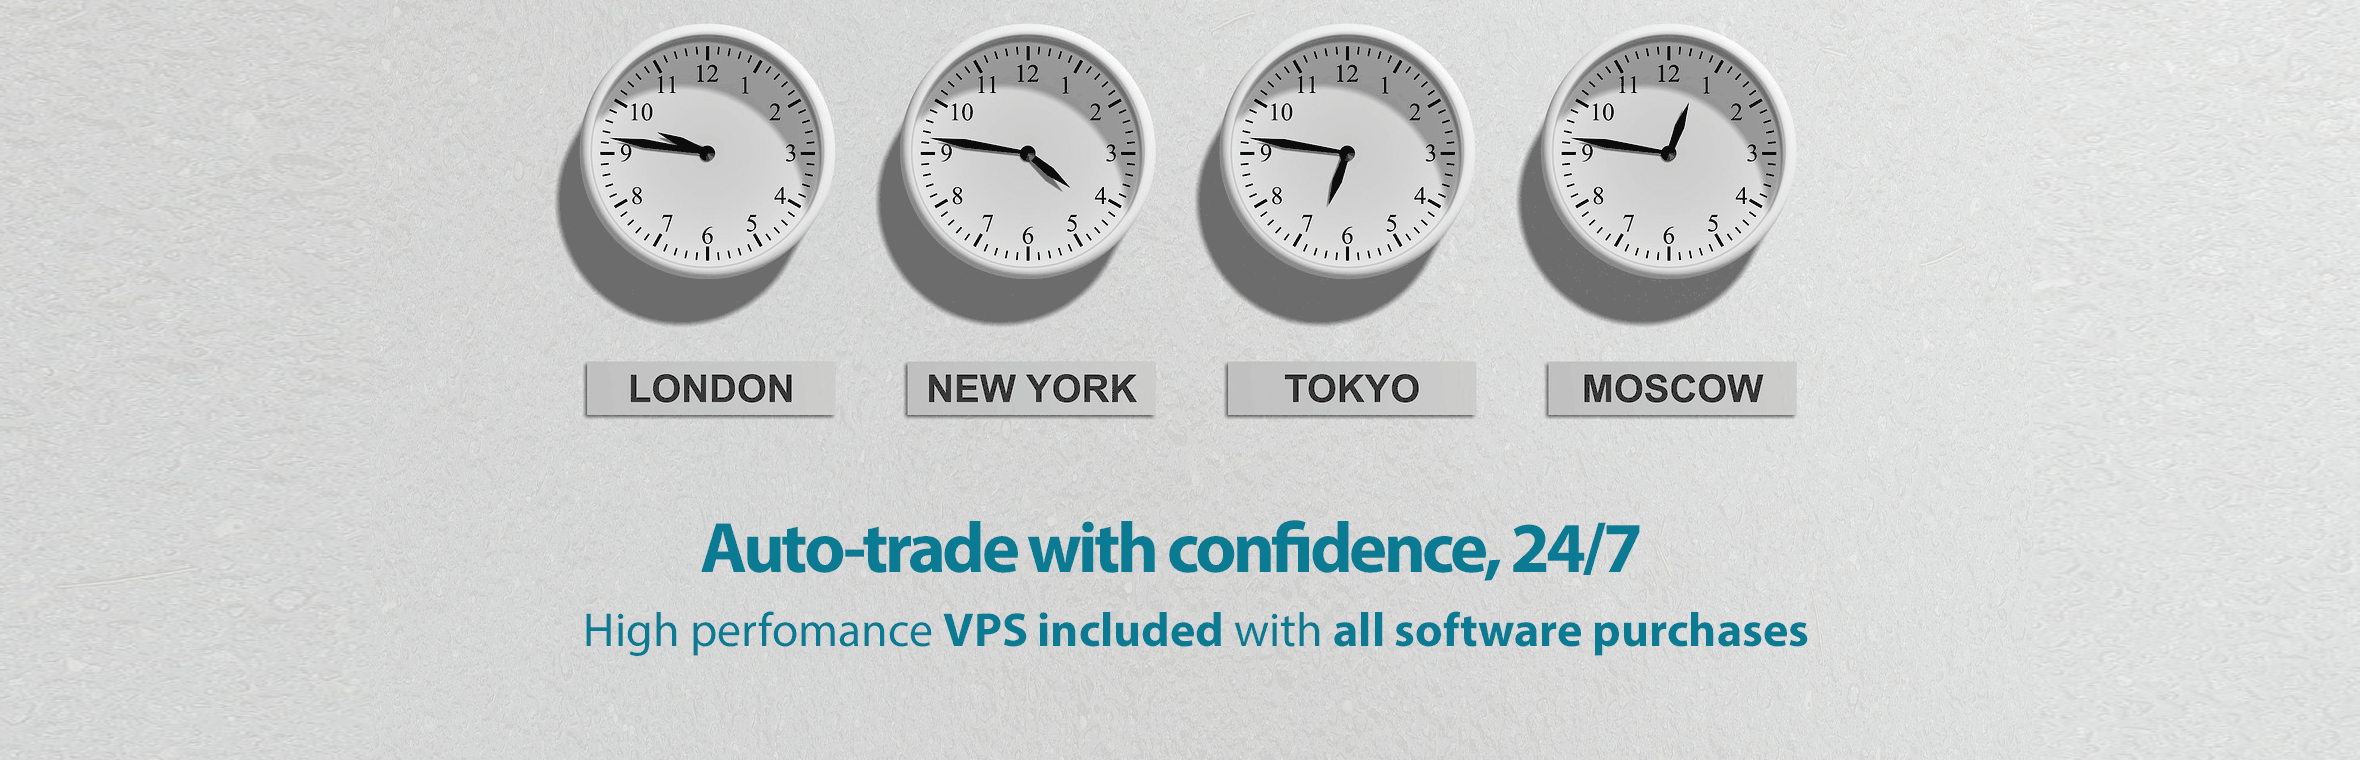 VPS included with all software purchases